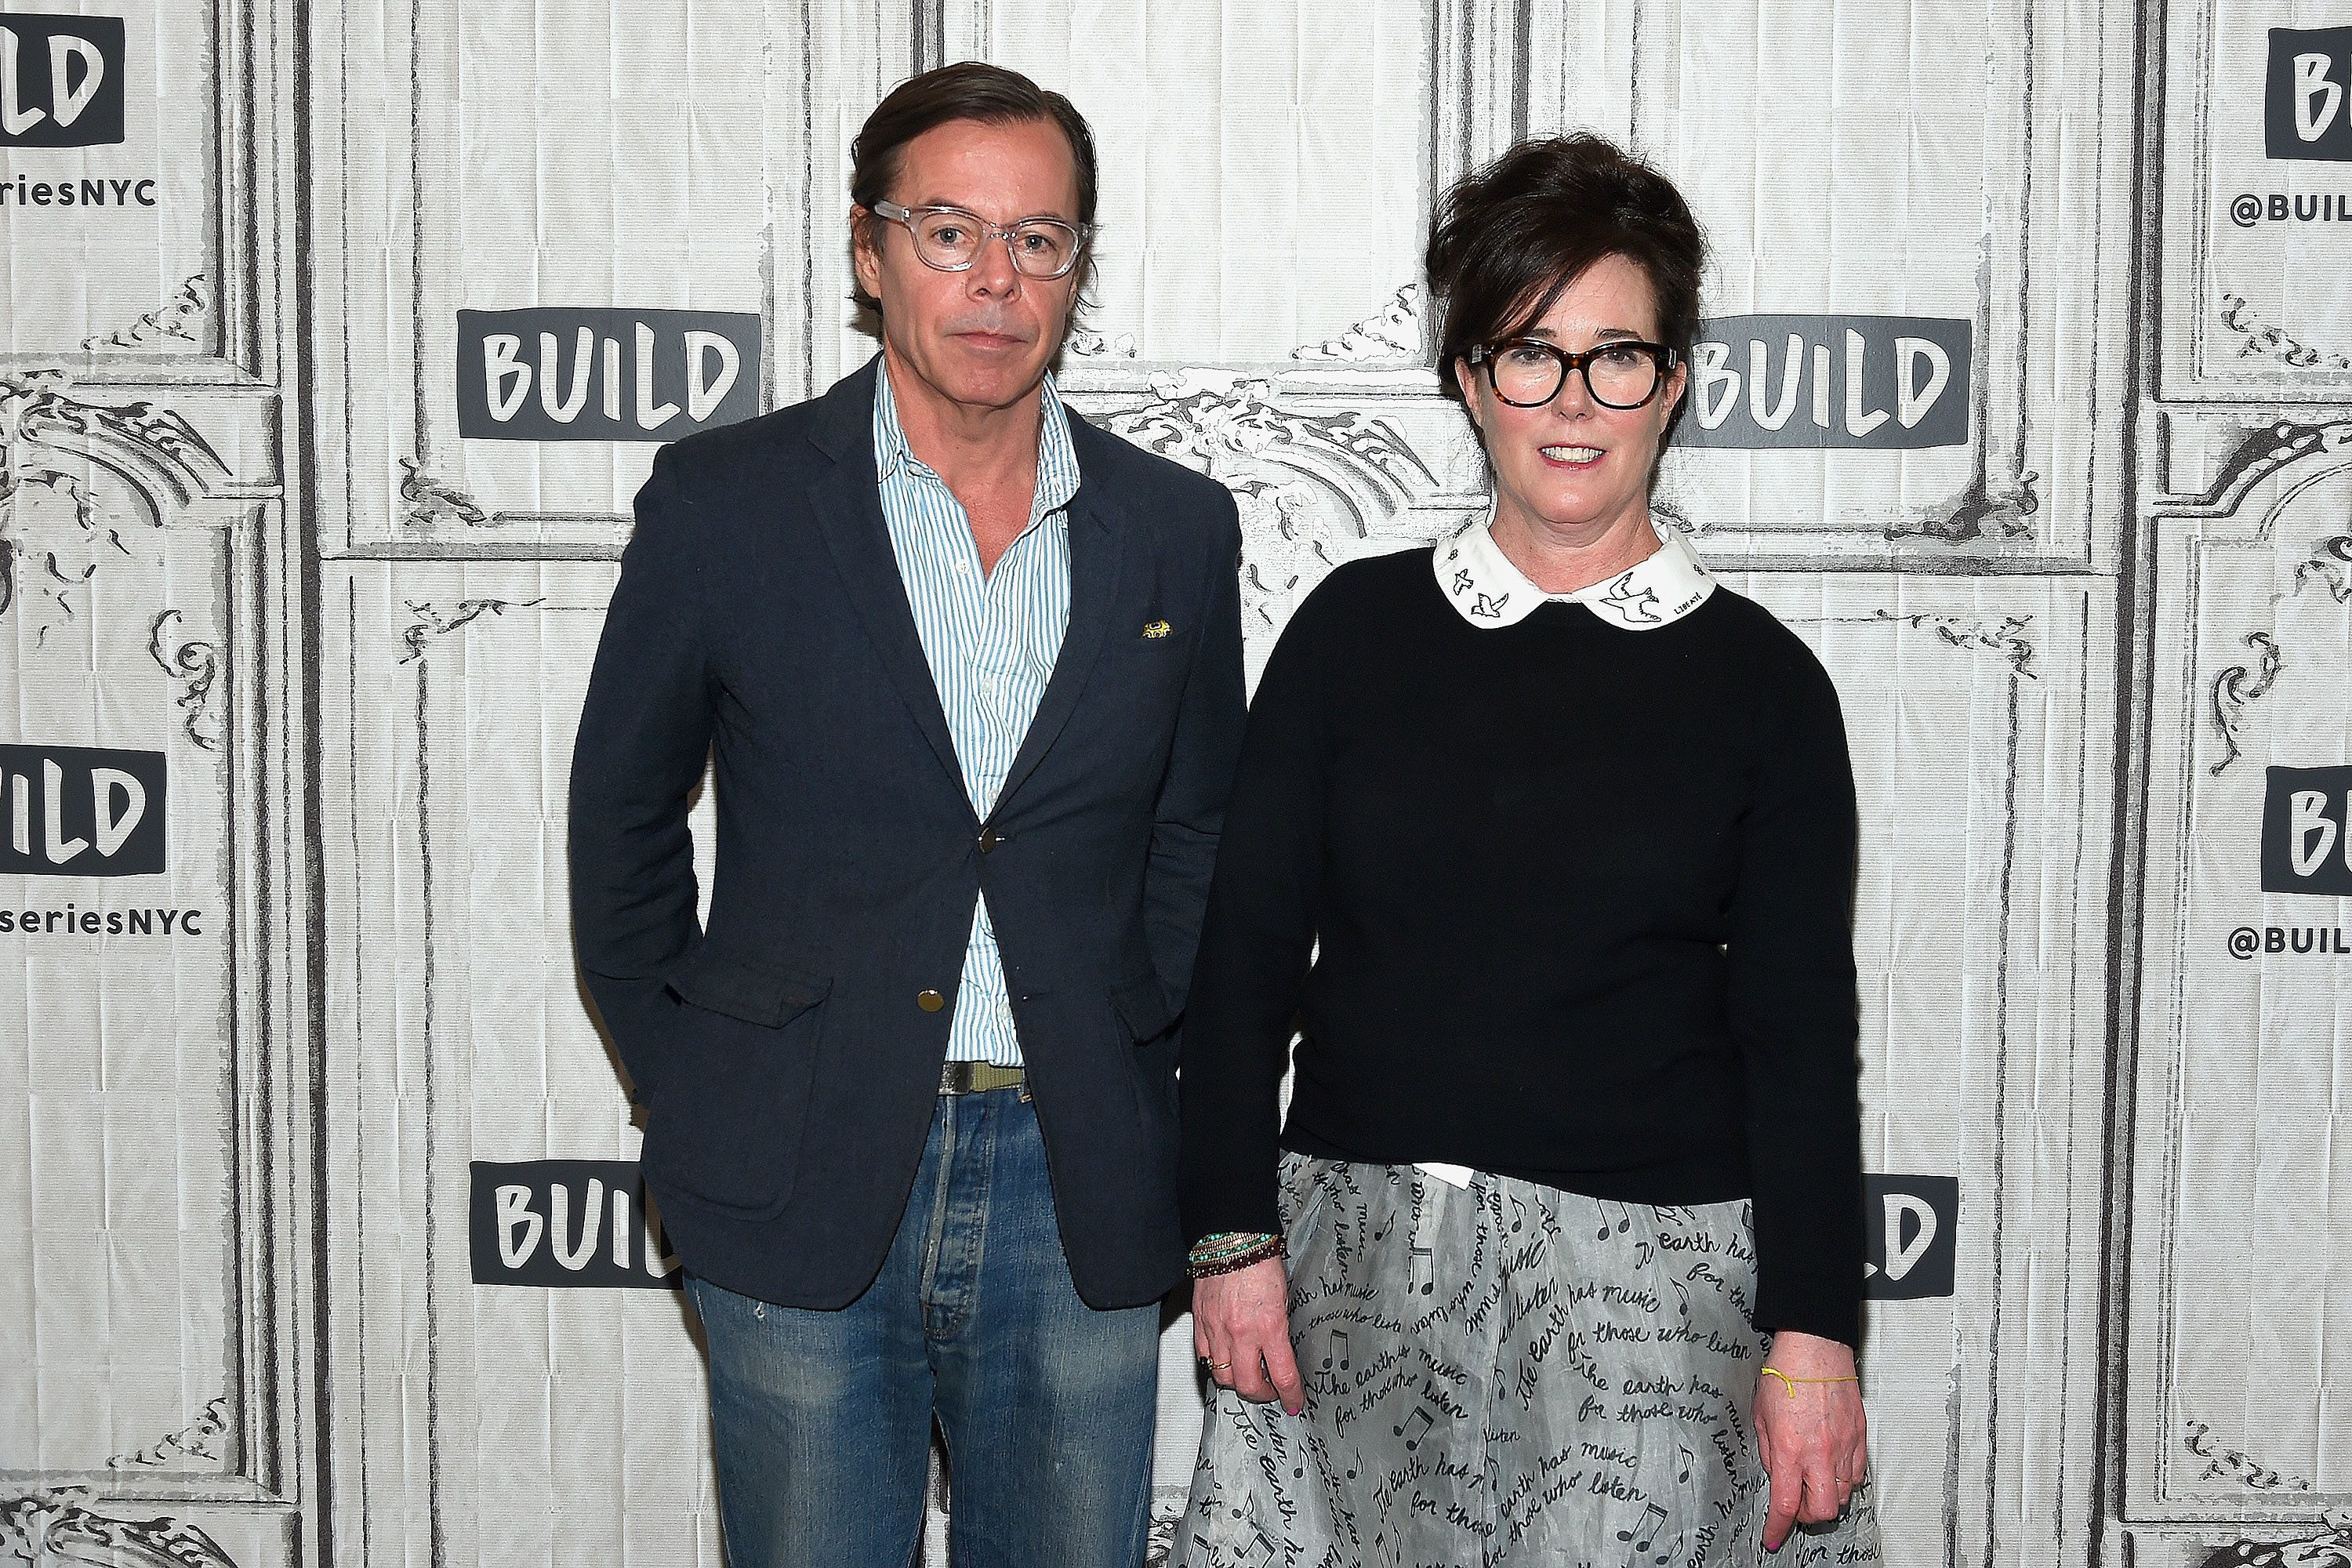 Kate Spade's Husband Says Her Death Was A 'Complete